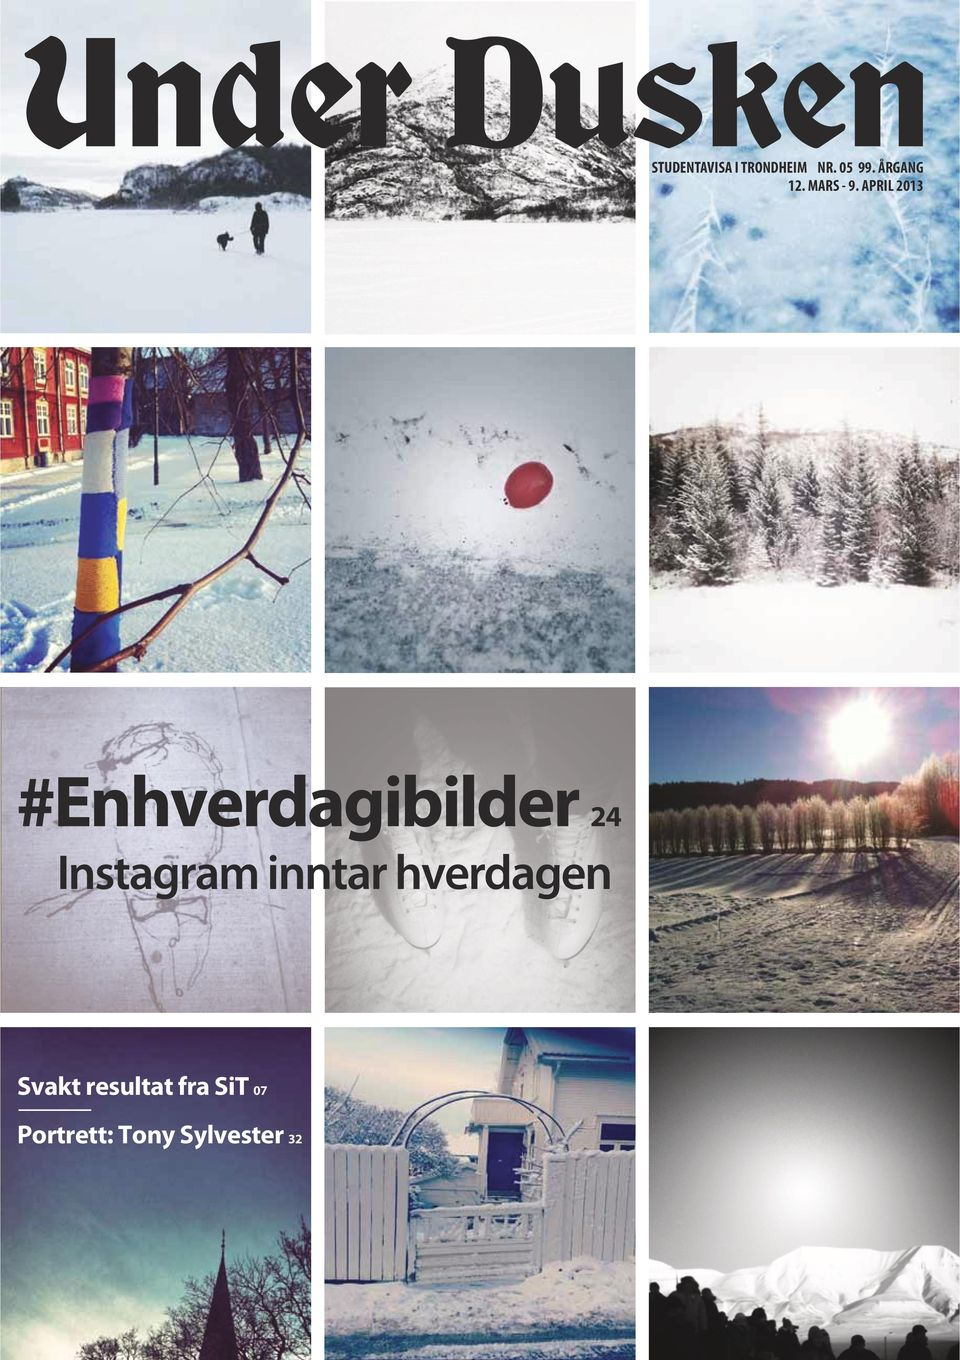 APRIL 2013 #Enhverdagibilder 24 Instagram